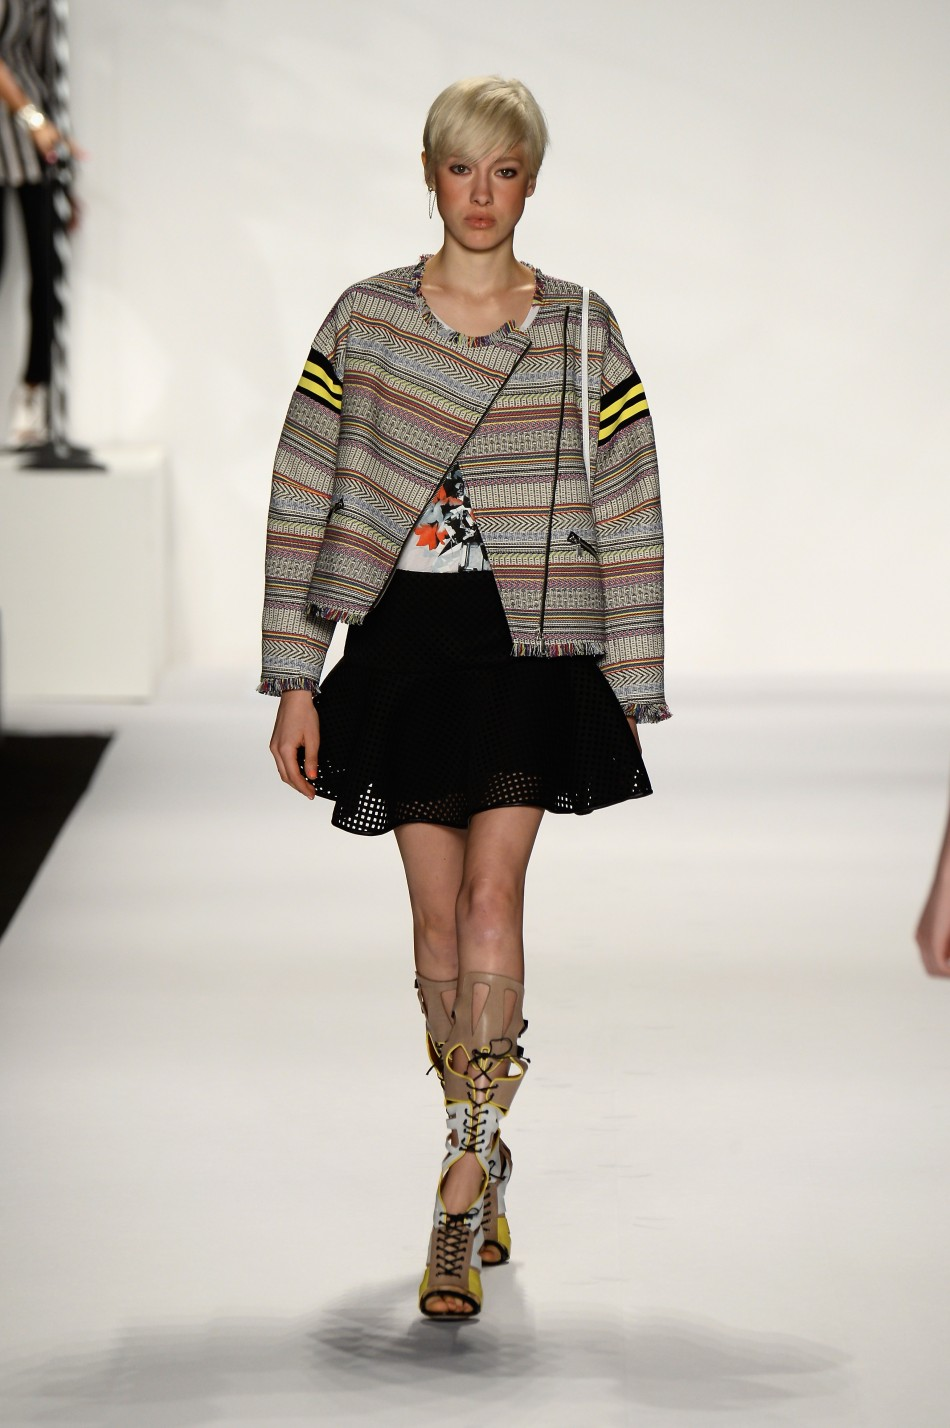 20582-rebecca-minkoff-spring-2014-new-york-fashion-week.jpg